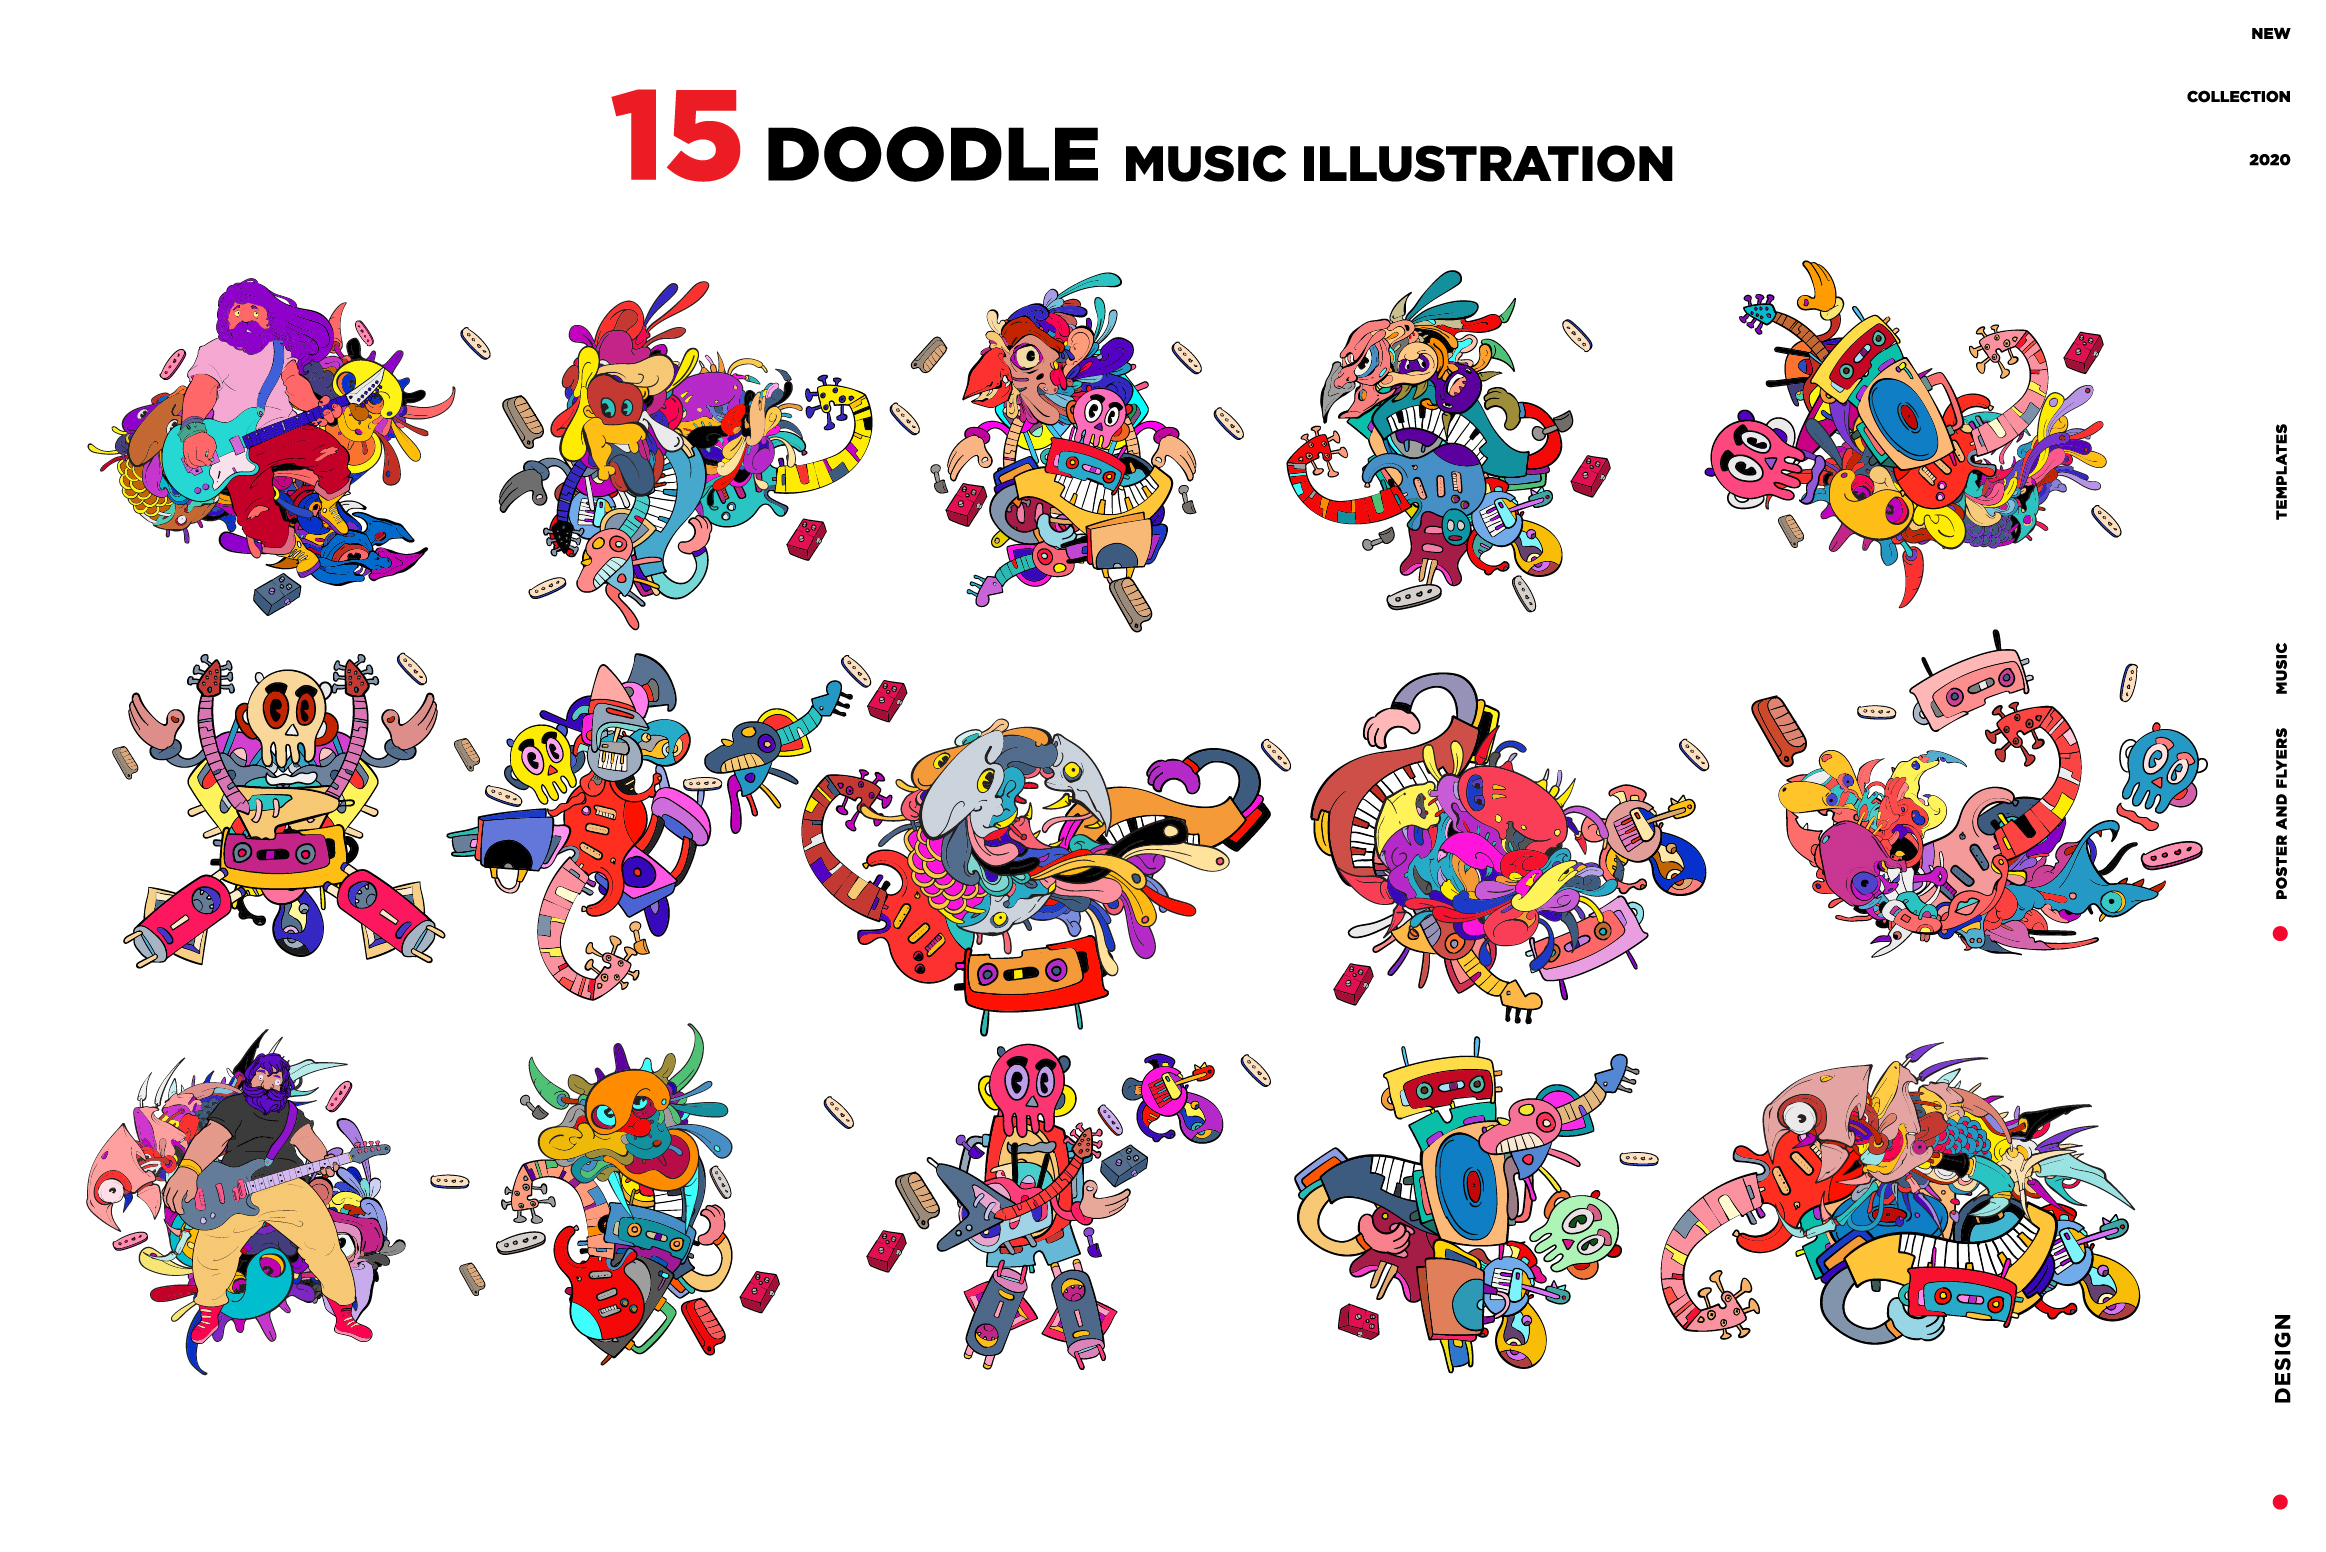 15 Doodle Music Illustration for World Music Day example image 3